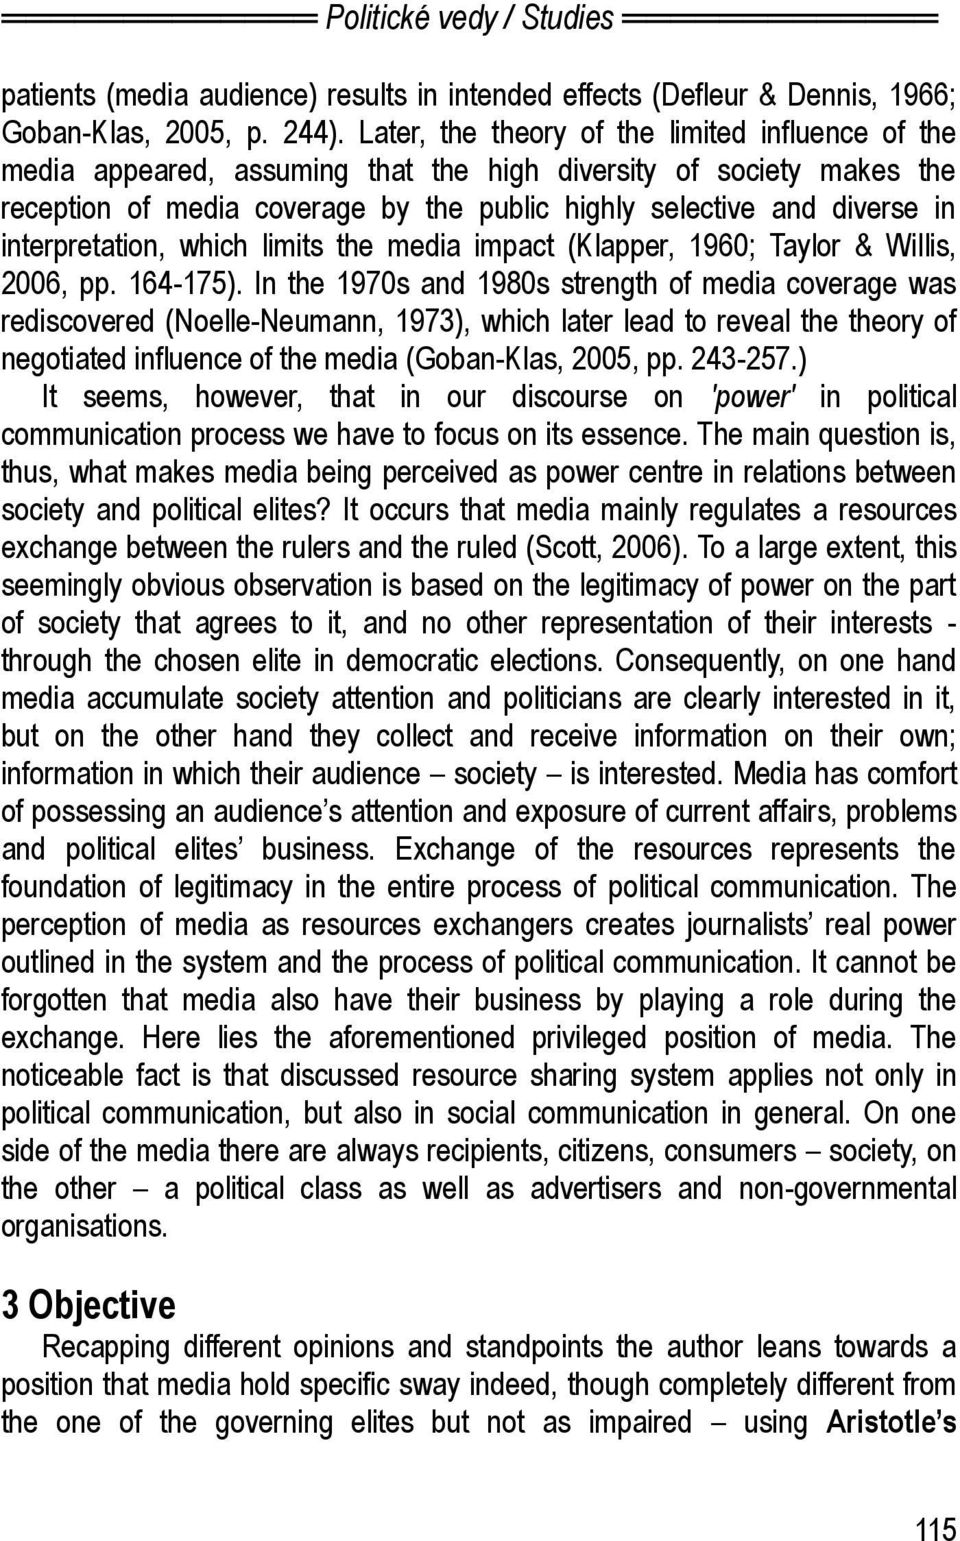 interpretation, which limits the media impact (Klapper, 1960; Taylor & Willis, 2006, pp. 164-175).